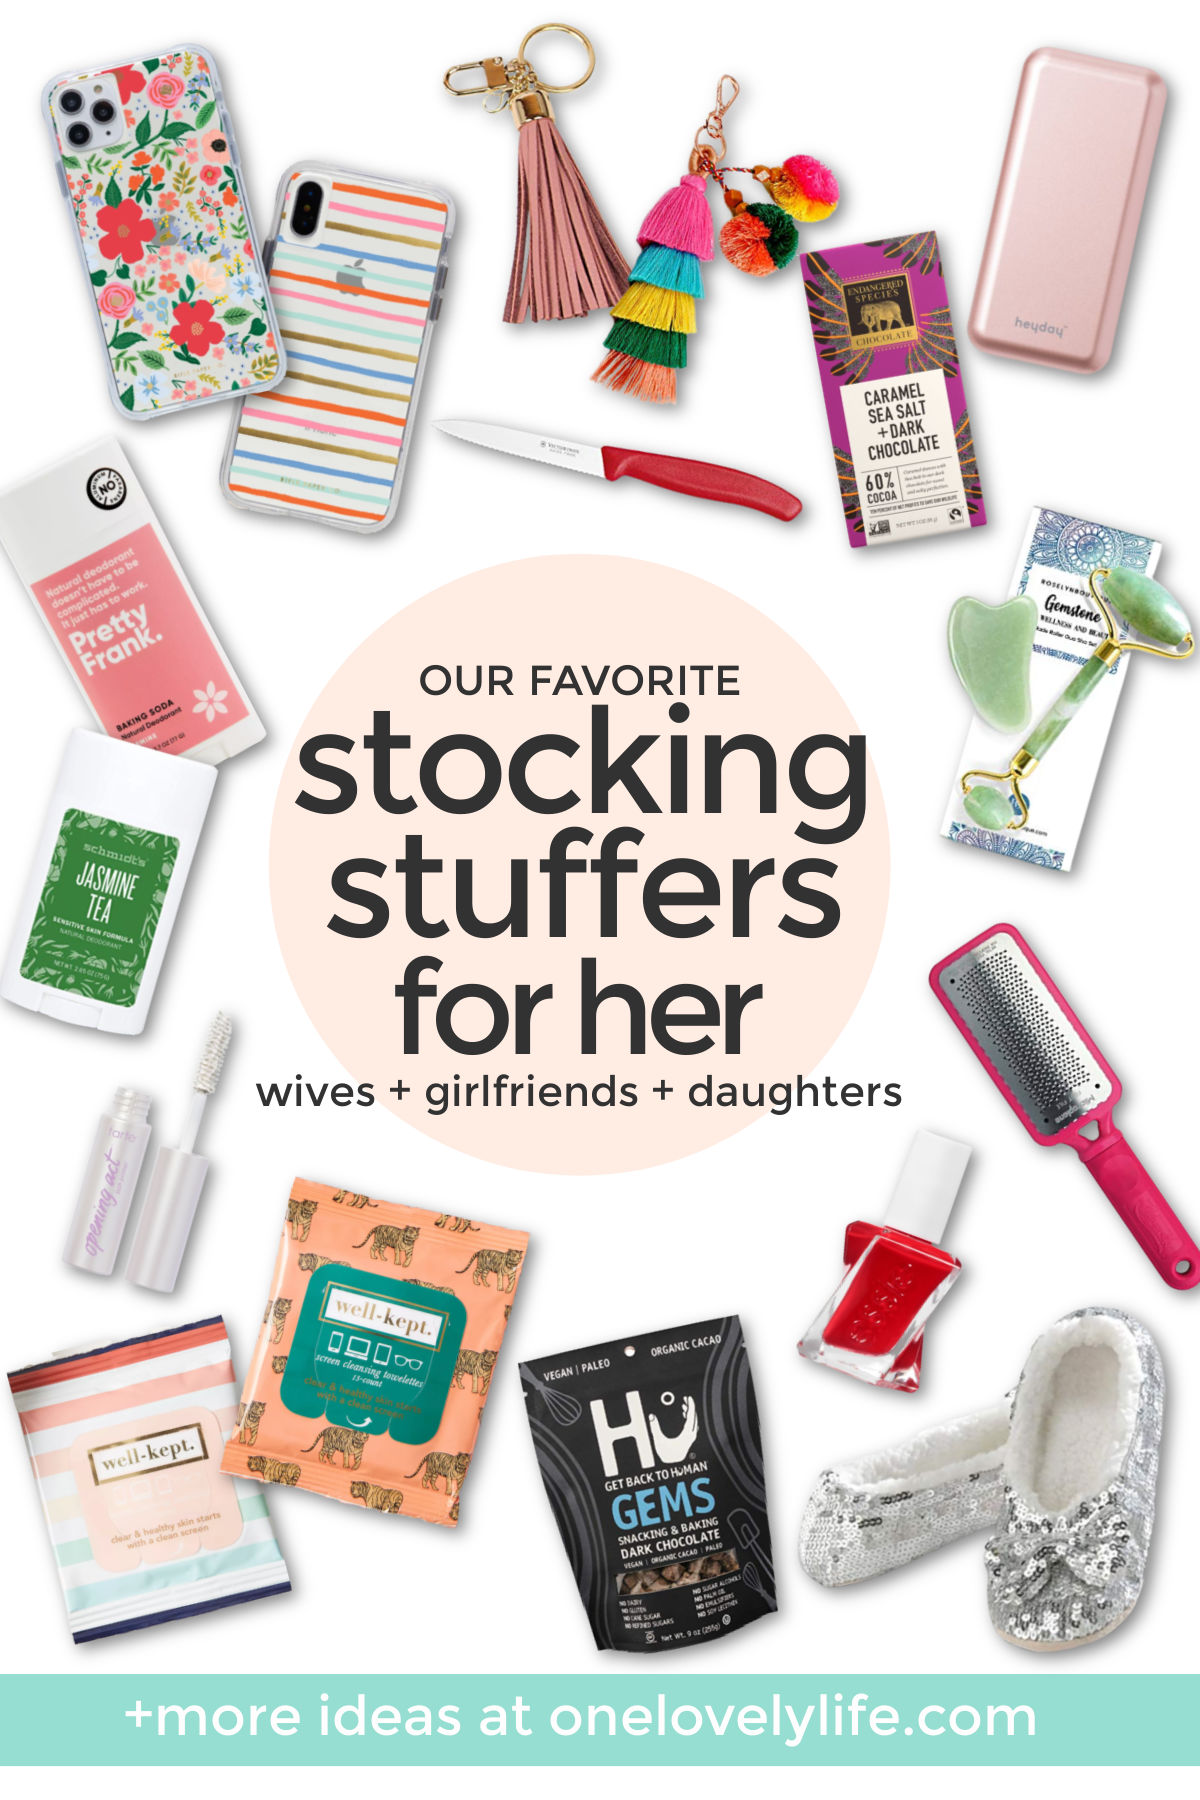 Stocking Stuffer Ideas for Him and Her - Make stocking stuffers steal the show this year with these great ideas for him and her! // Stocking Stuffers for Men // Stocking Stuffers for Women // Stocking Stuffers for Husbands // Stocking Stuffers for Wife #stockingstuffers #giftideas #holidaygiftt #stockings